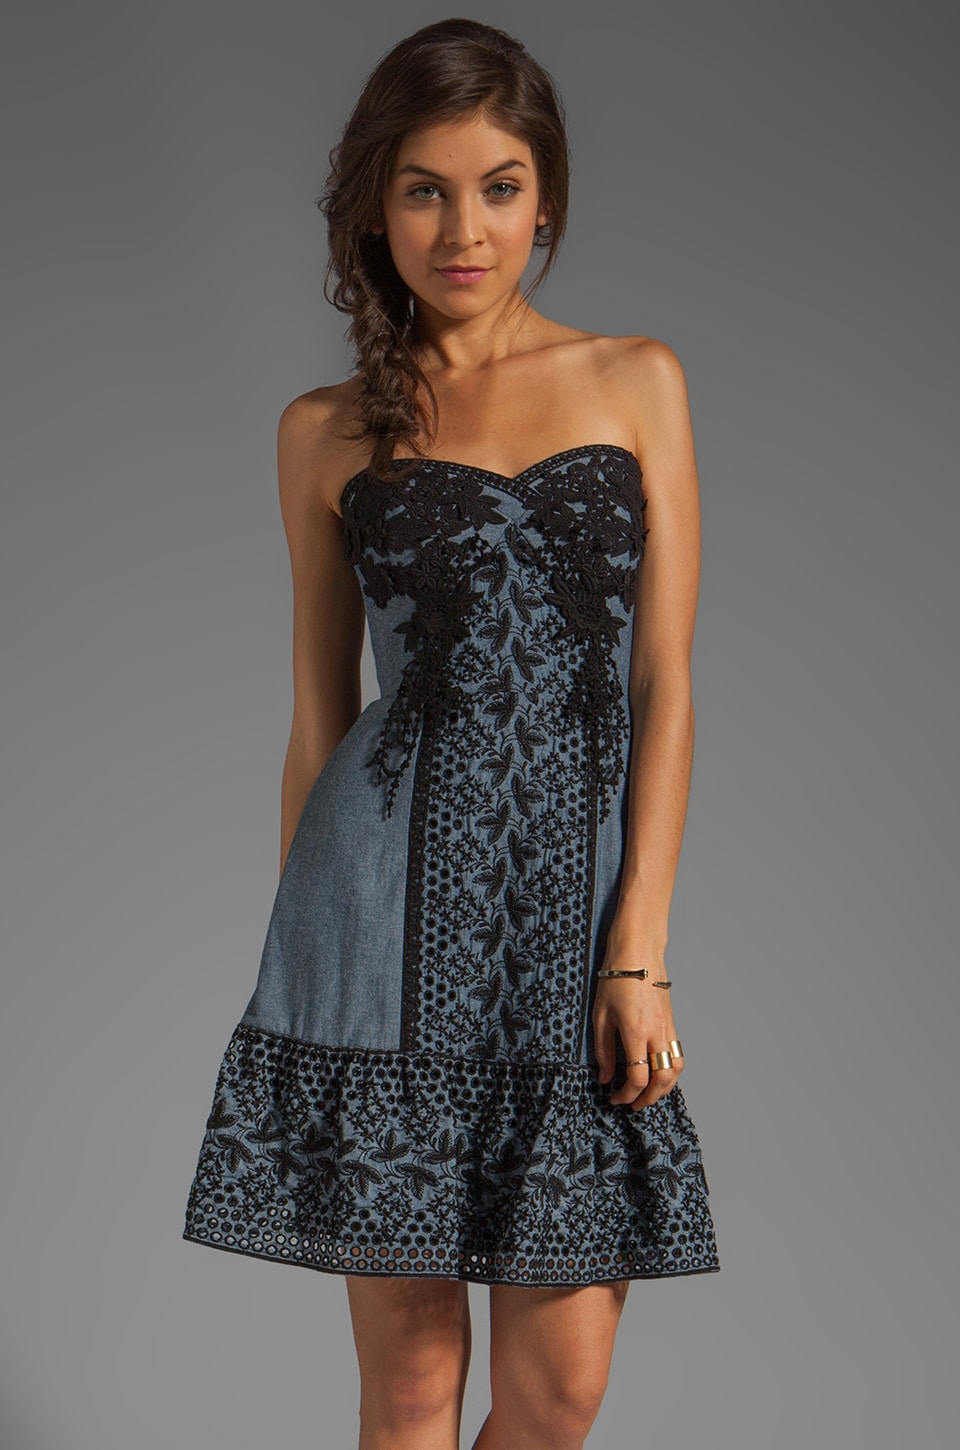 Anna Sui Lilac Embroidered Eyelet and Lace Strapless Dress in Indigo Multi